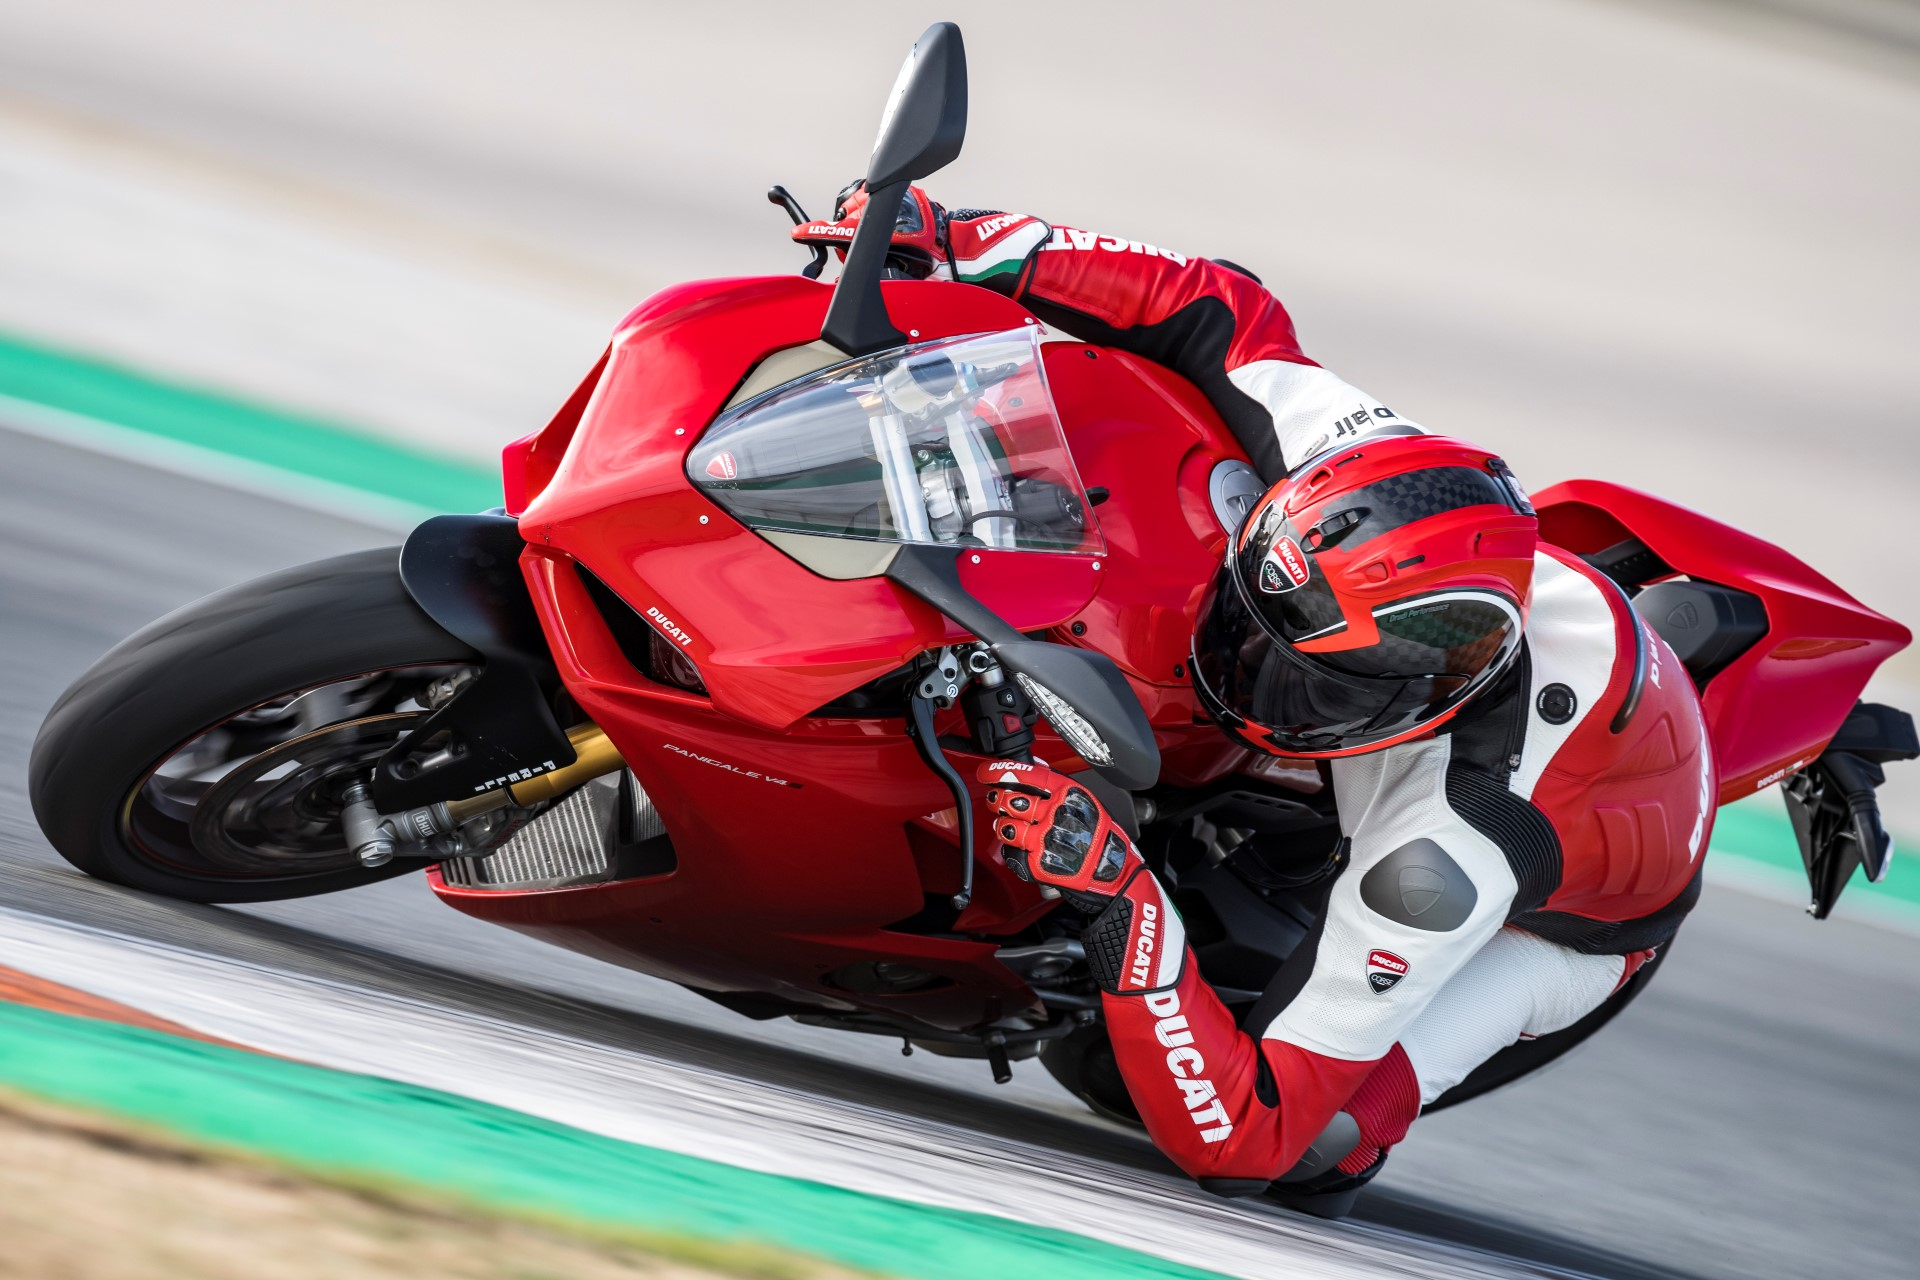 Ducati sells almost 60.000 motorcycles worldwide in 2017